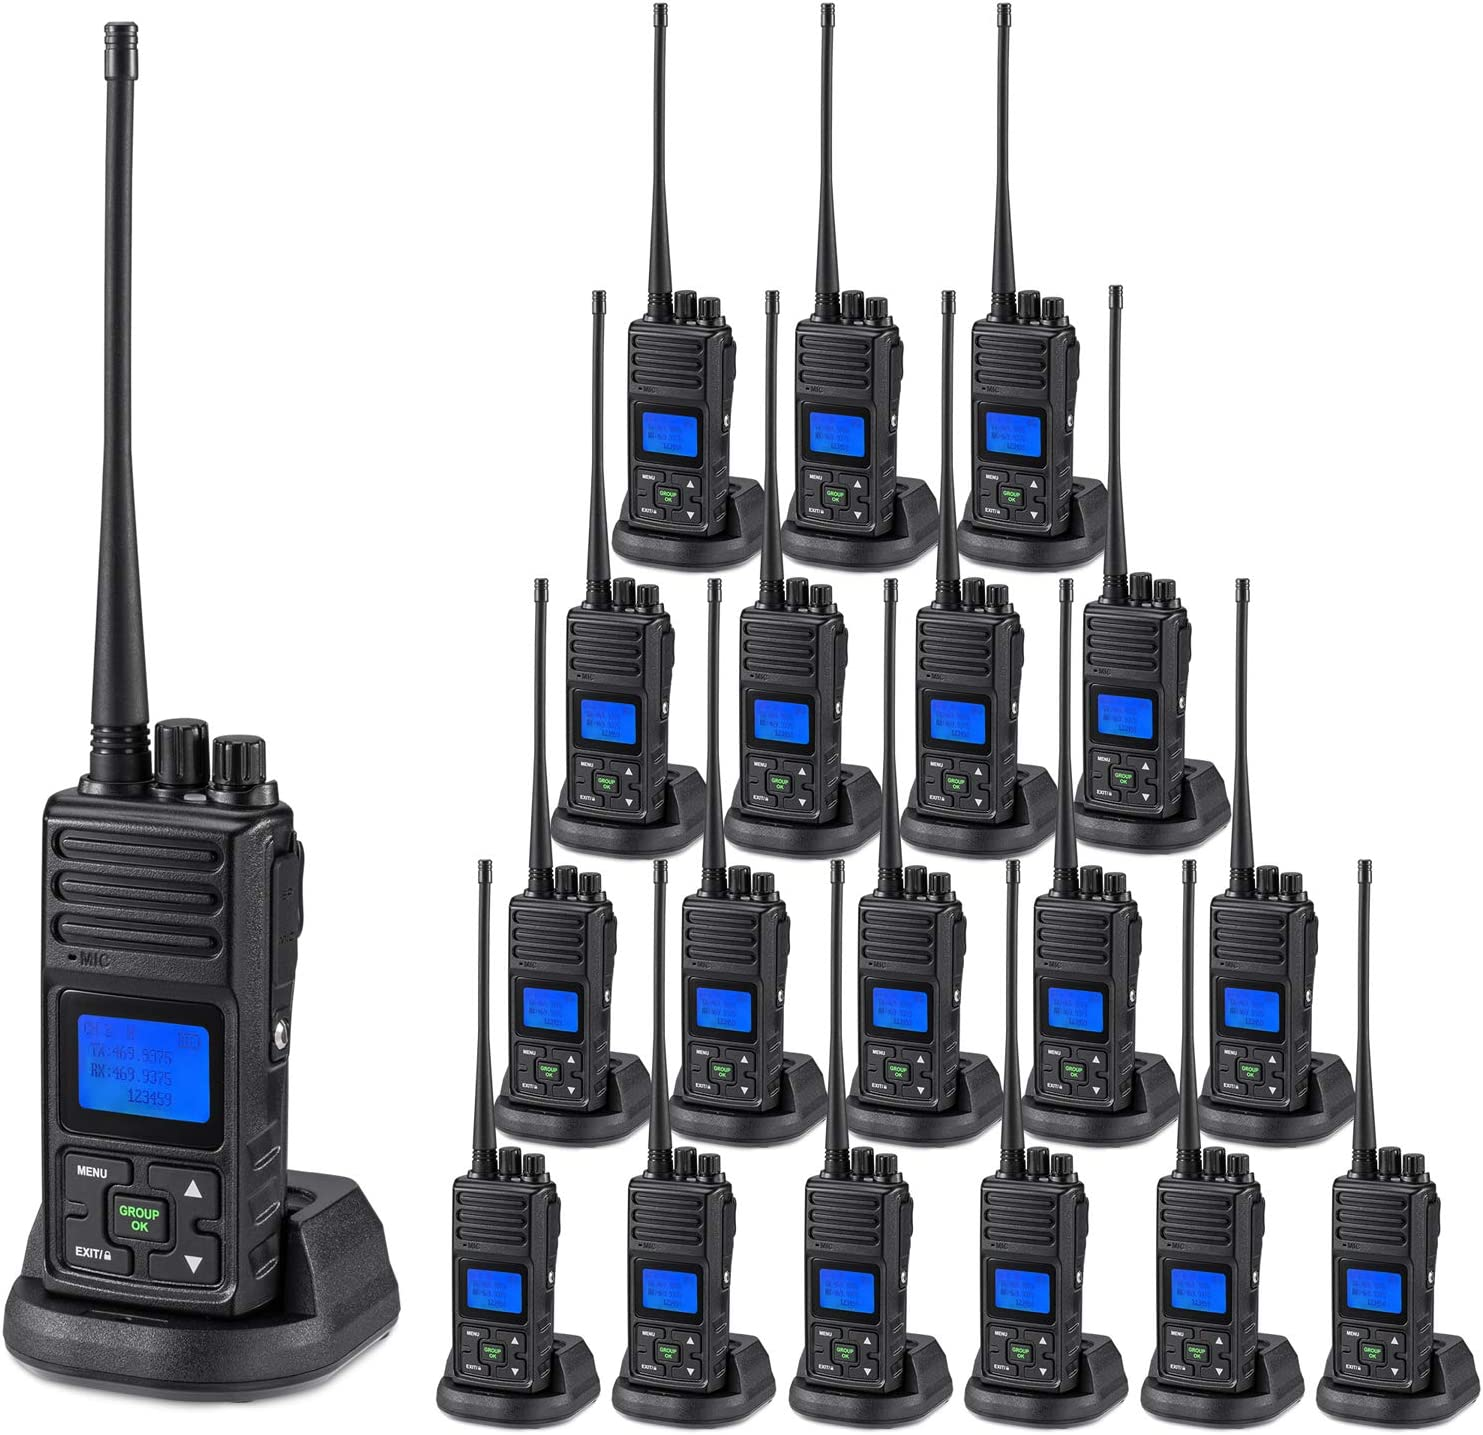 SAMCOM 5 Watts Two Way Radio Long Range Handheld UHF Business Ham Radio for Adult Programmable Walkie Talkie with Rechargeable 1500mAh Battery LCD Display Charging Docks Earpieces (19 Packs)